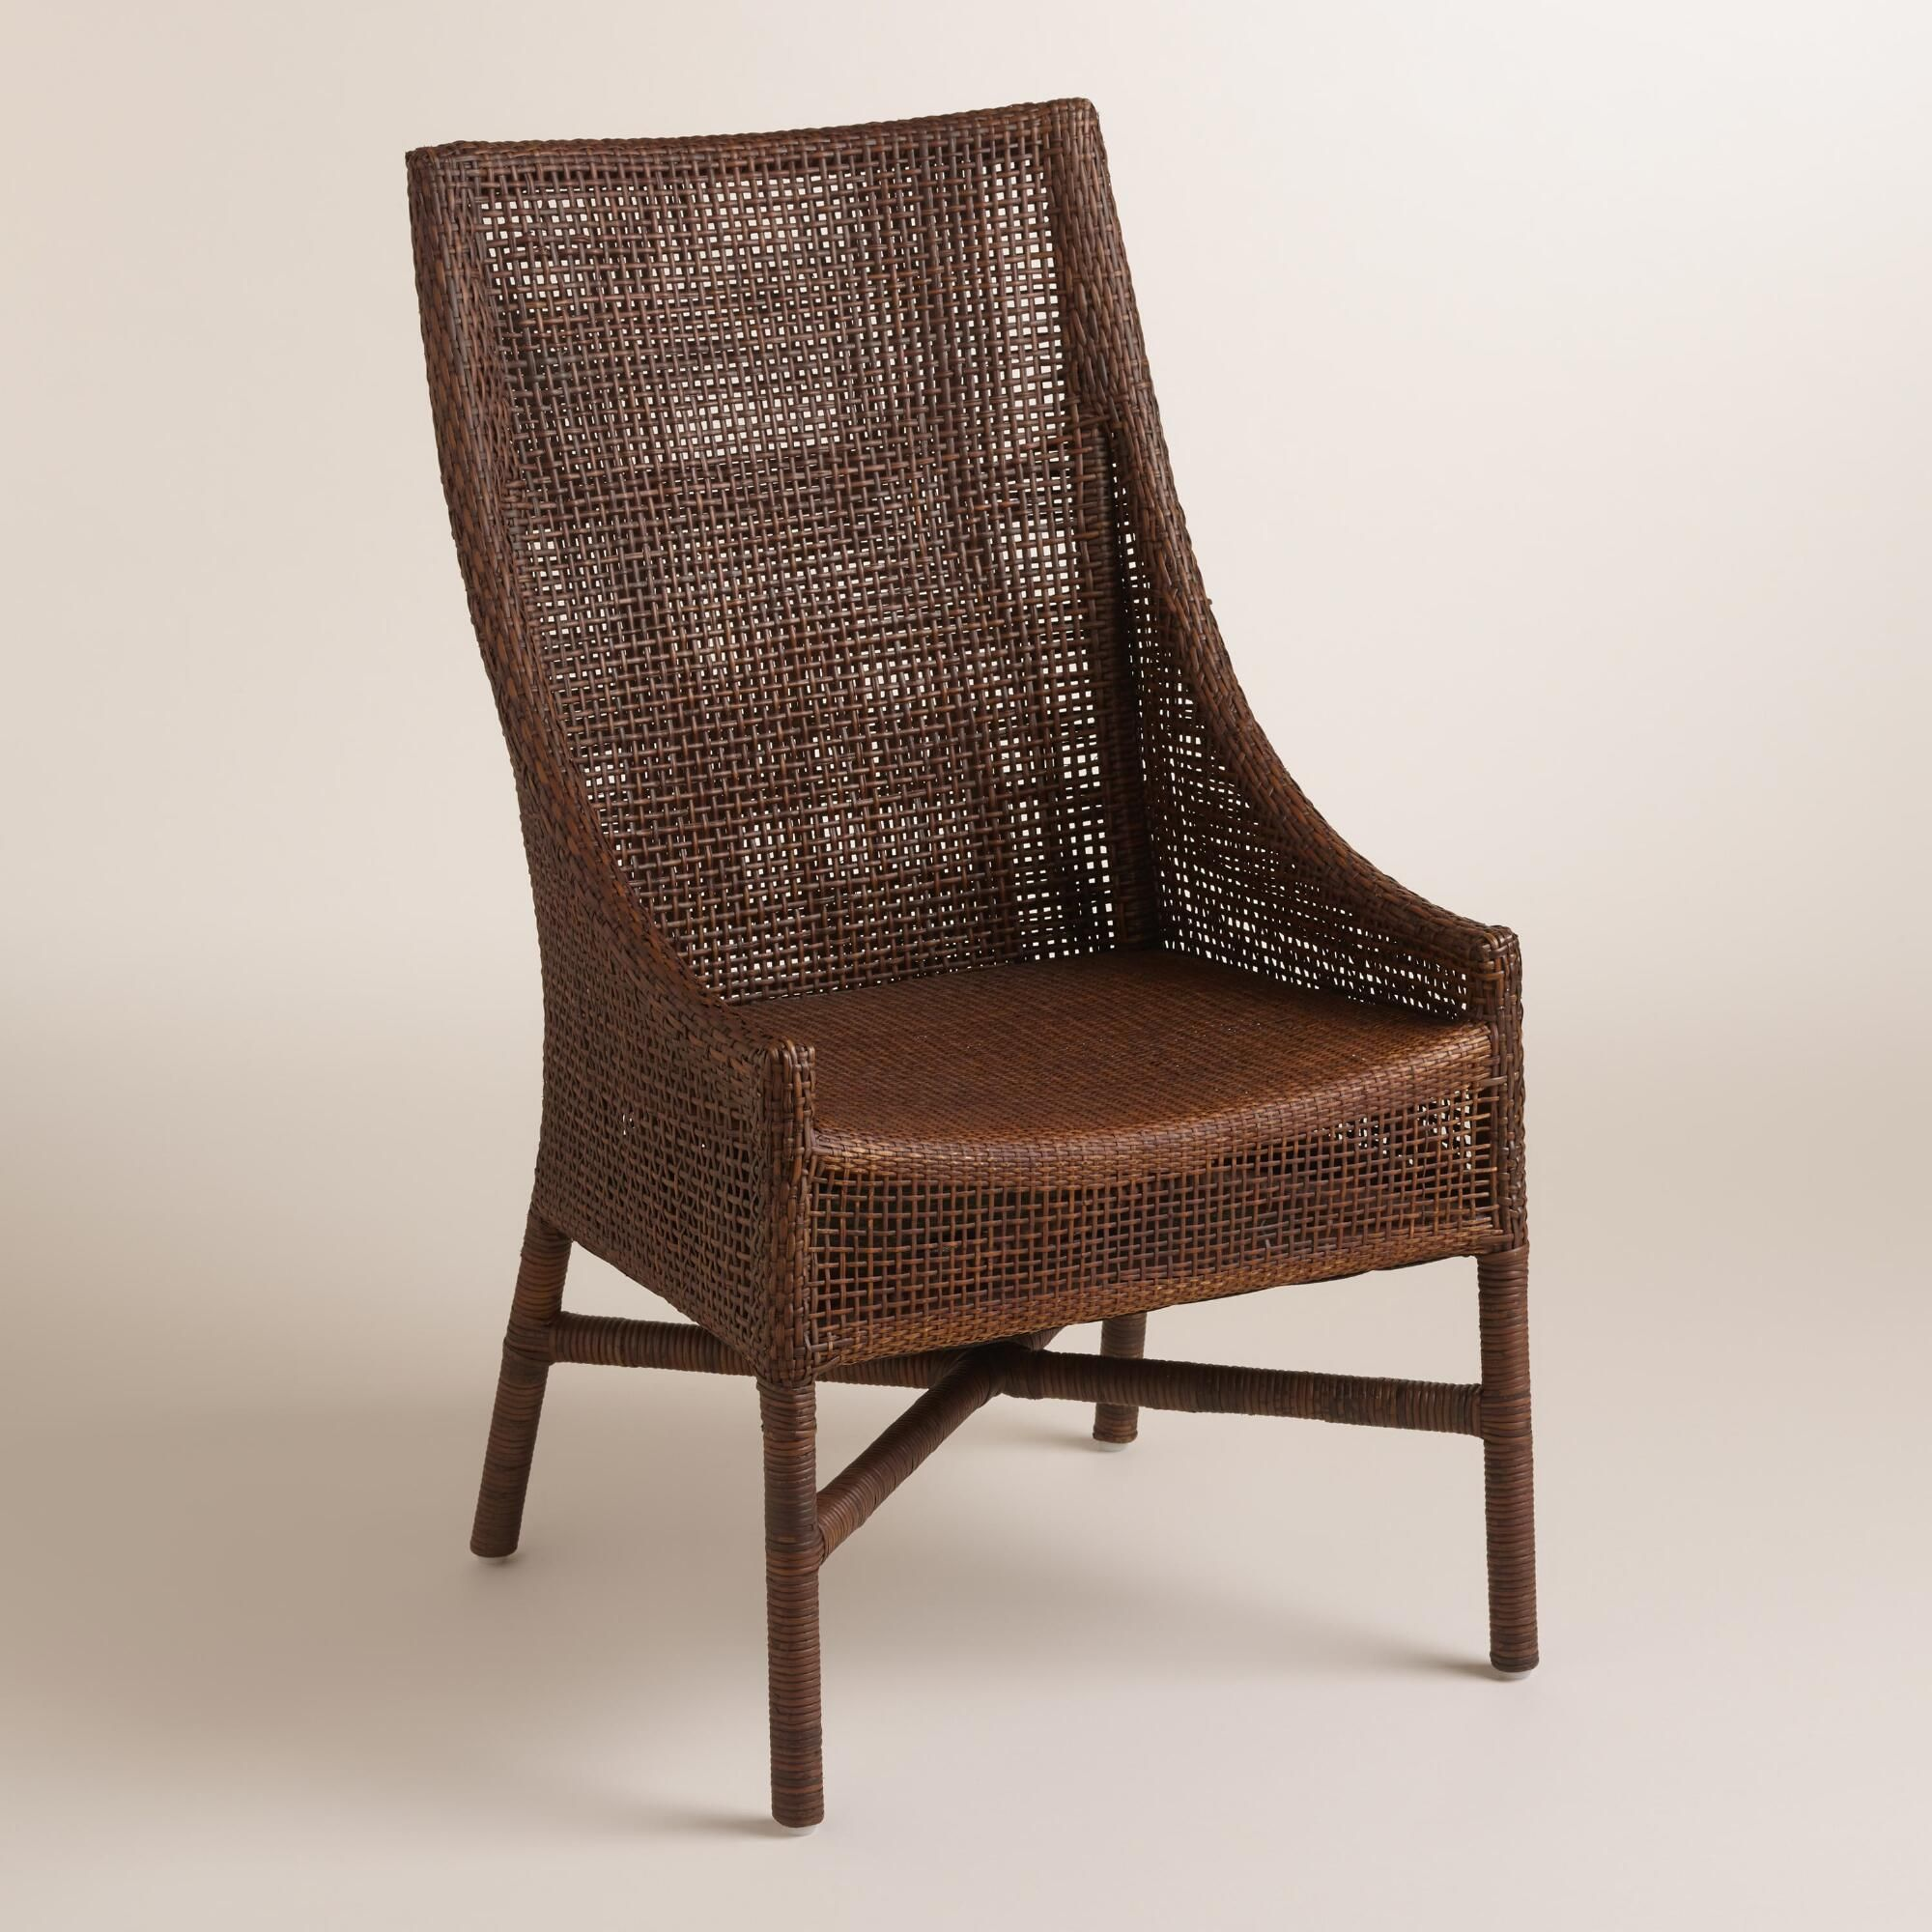 Brown Woven Rattan Carson Chairs Set of 2 | Open weave, Rattan and ...